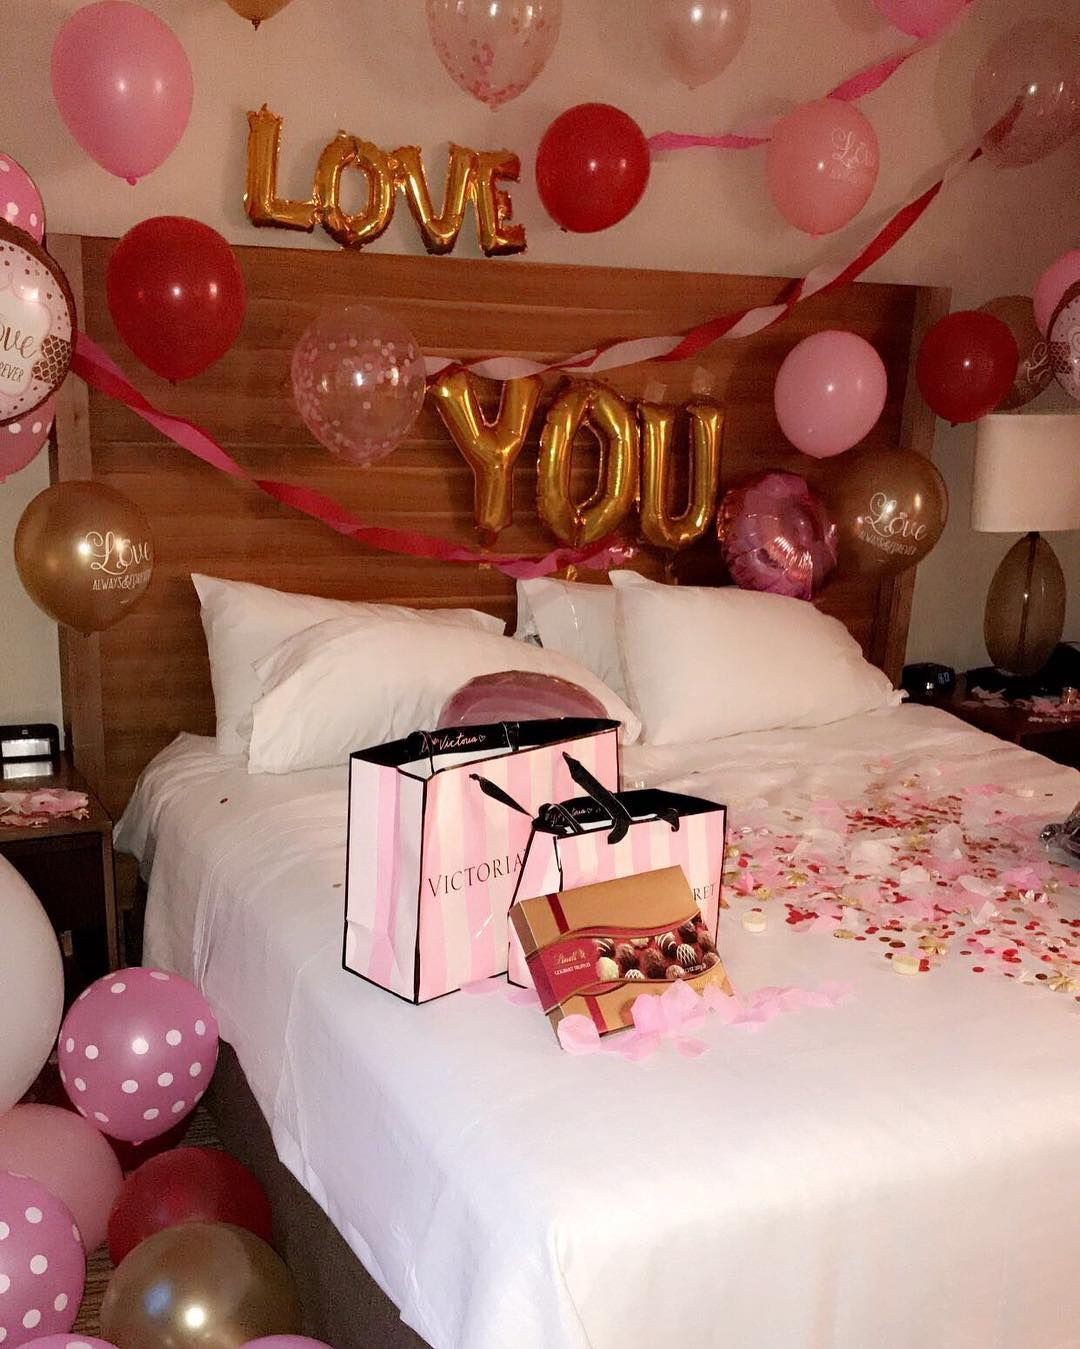 5 Decorating Ideas For Bedrooms: Pin By Jayda And Jayden On Being In Love